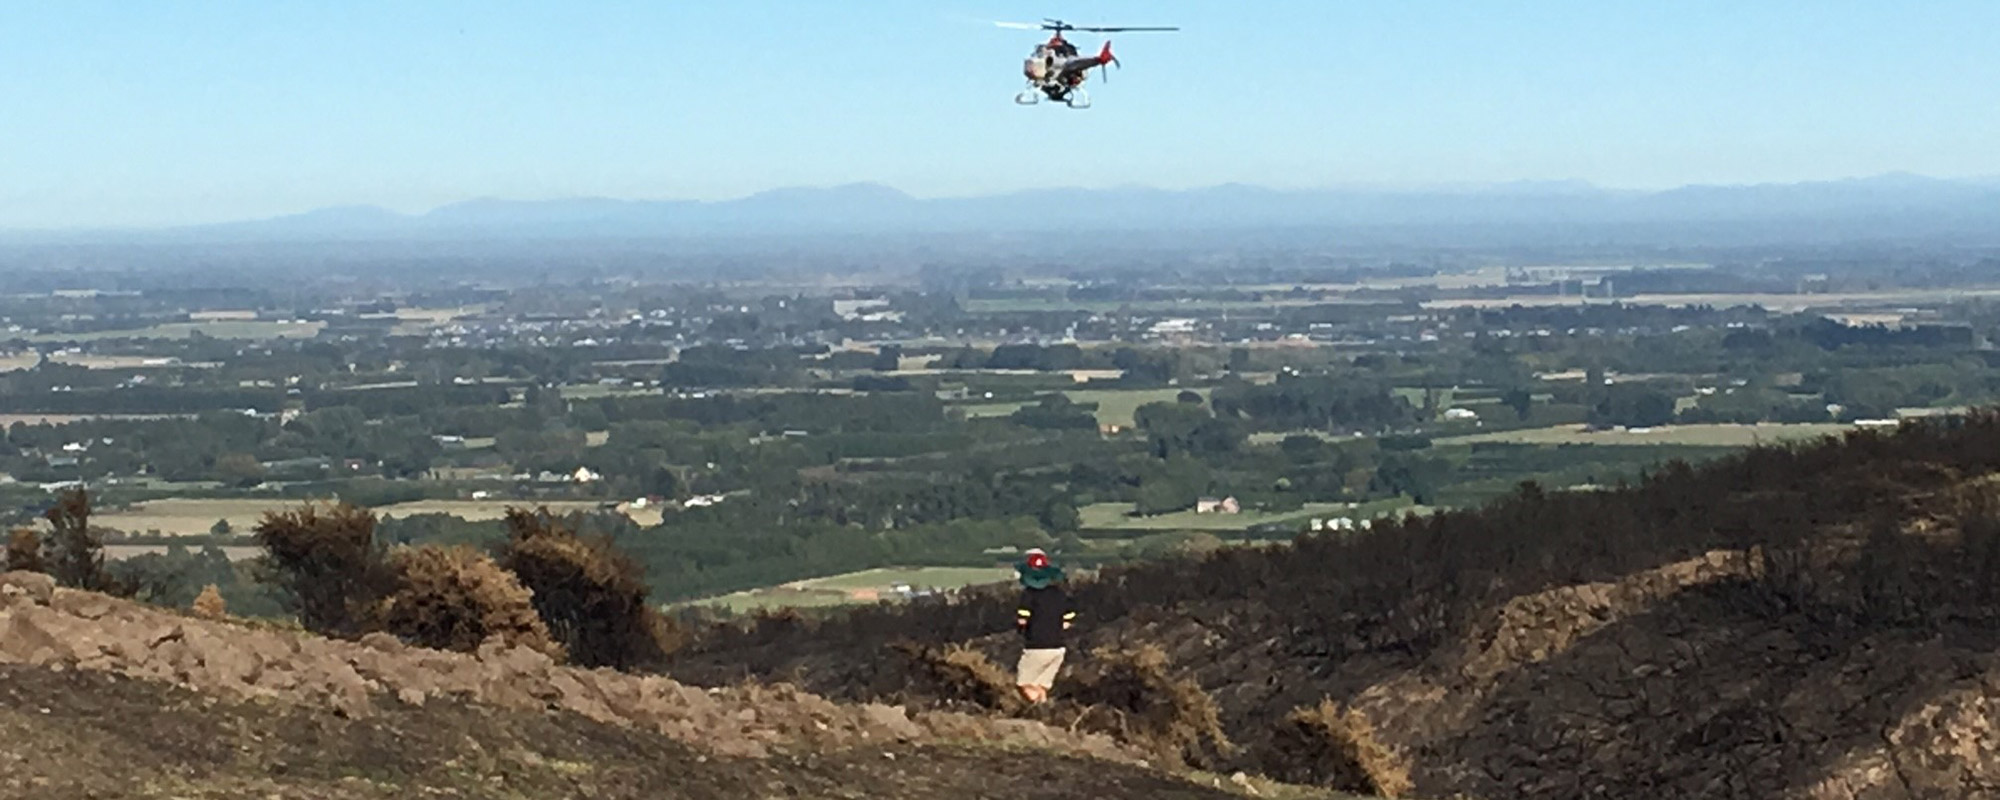 Drone re-seeding the Port Hills near Christchurch after fires